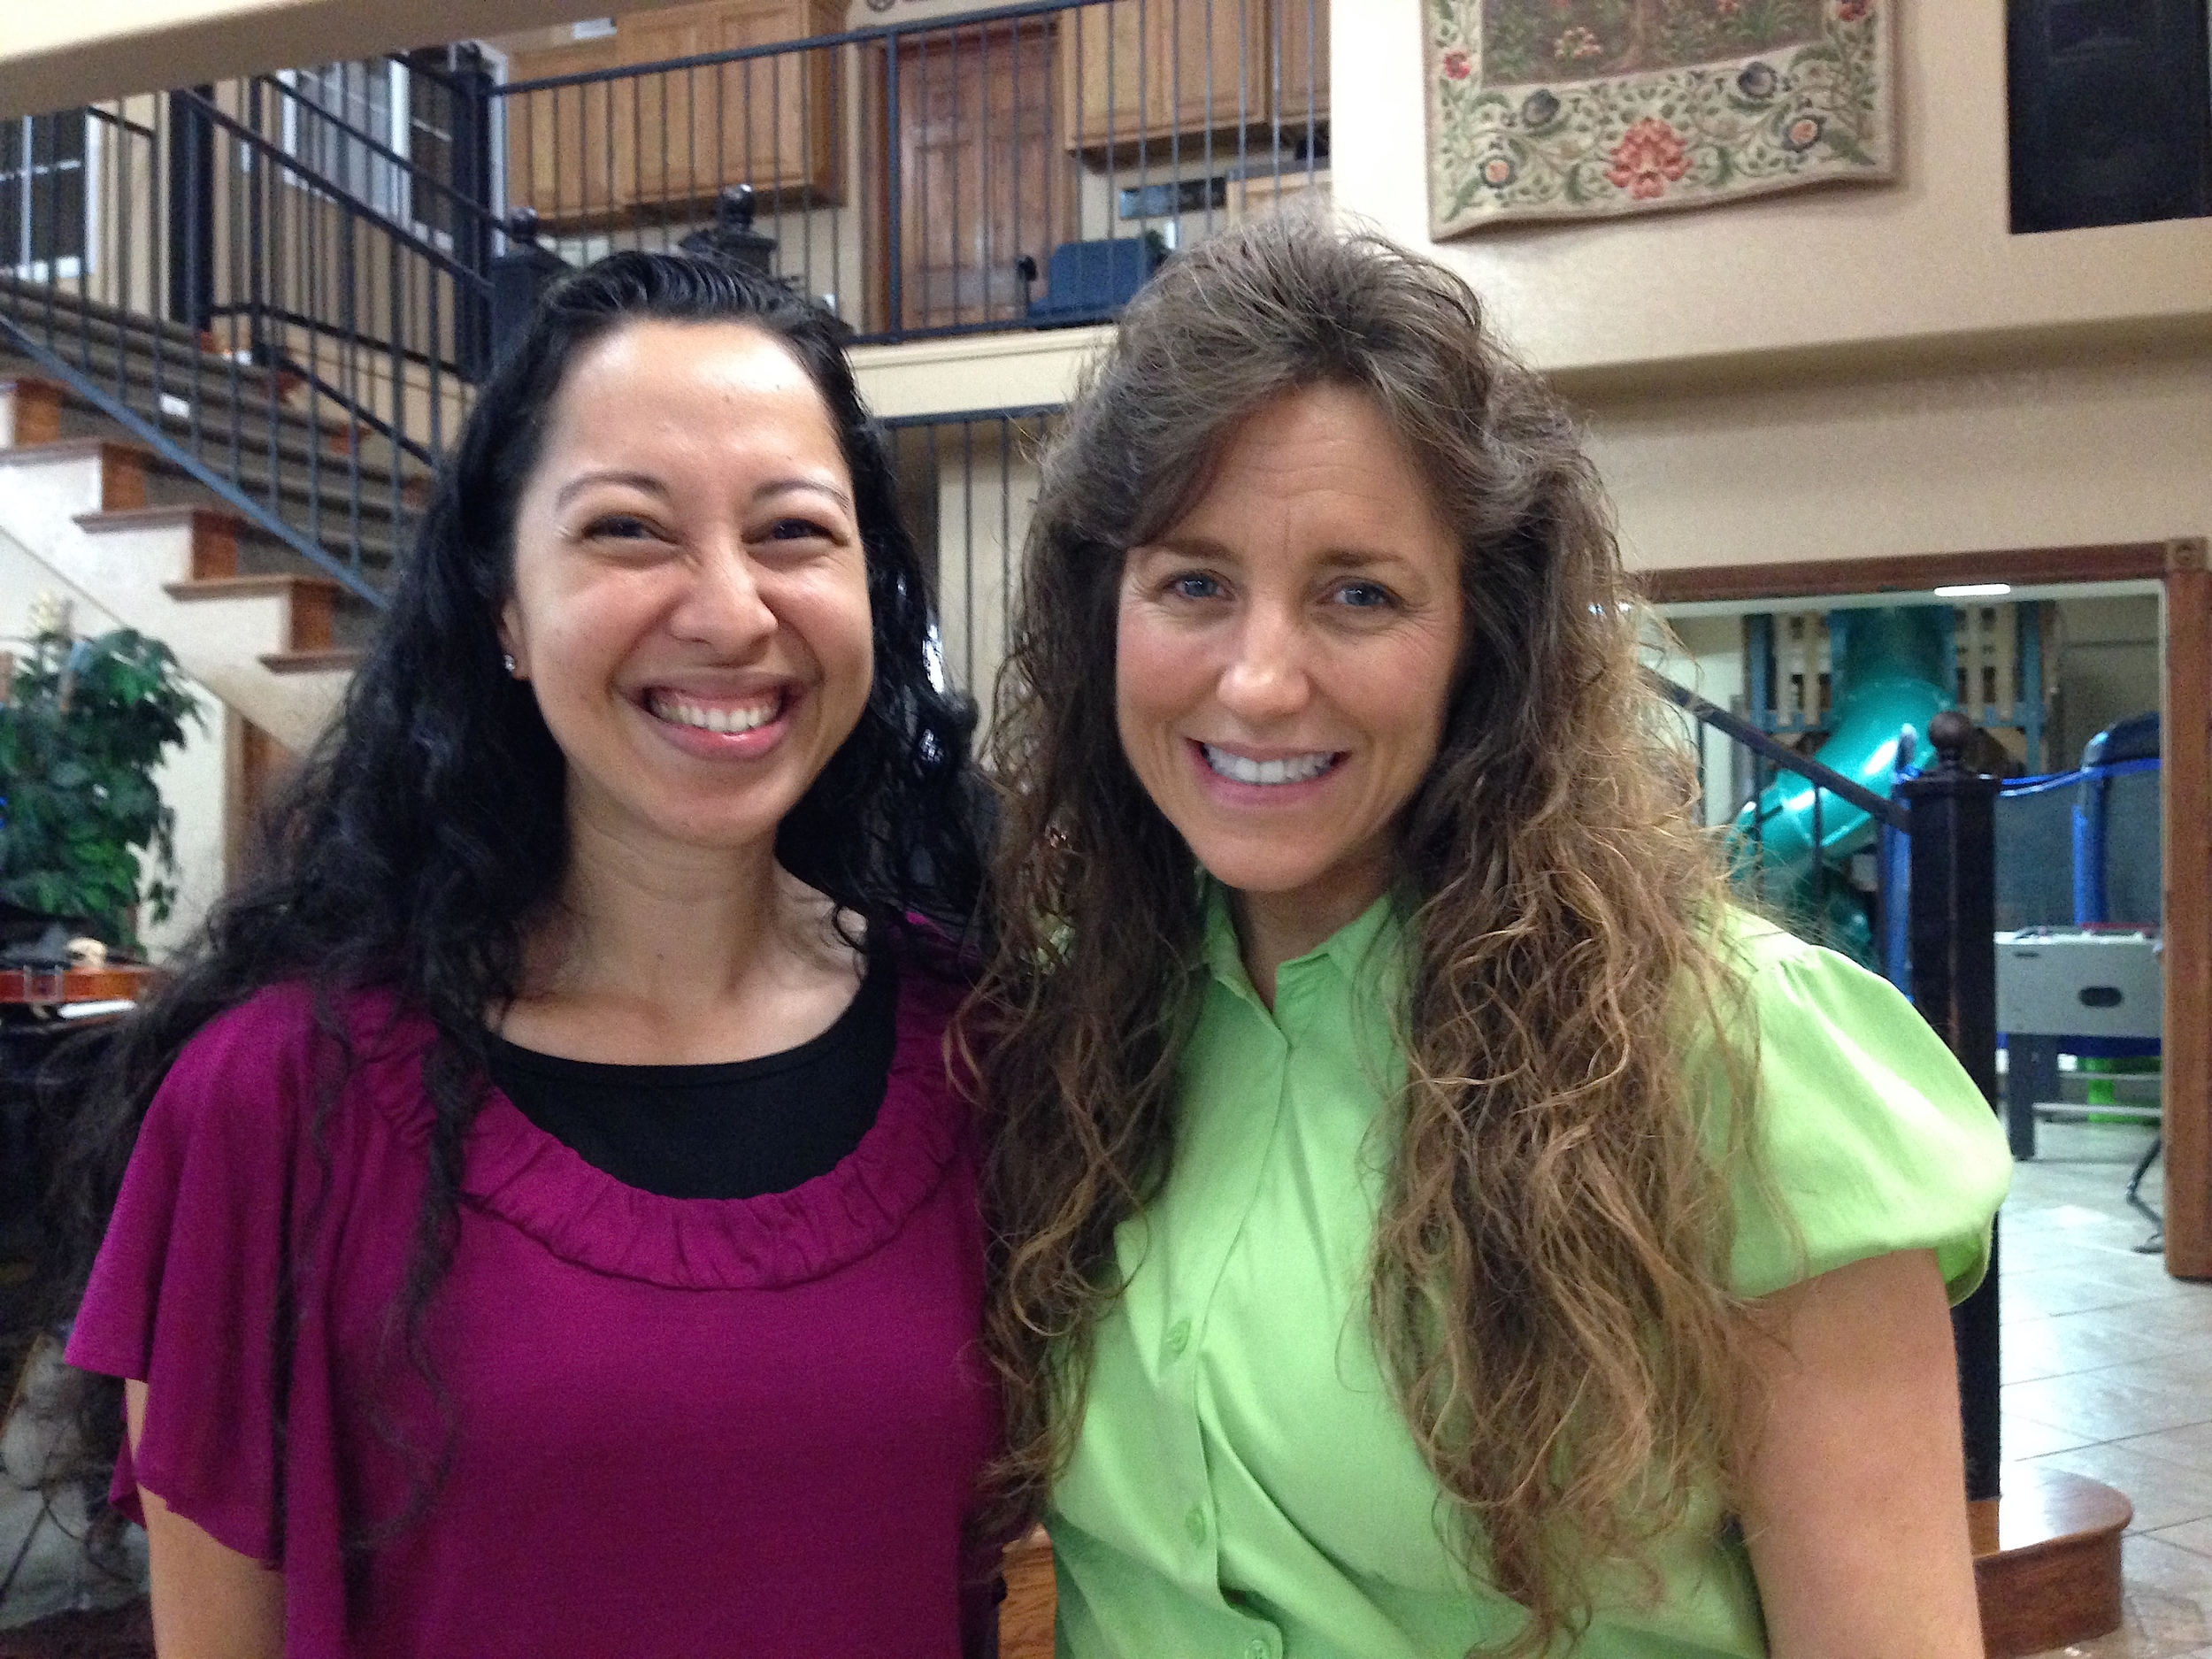 Franicia White and Michelle Duggar at the Duggar's home in Tontitown Arkansas